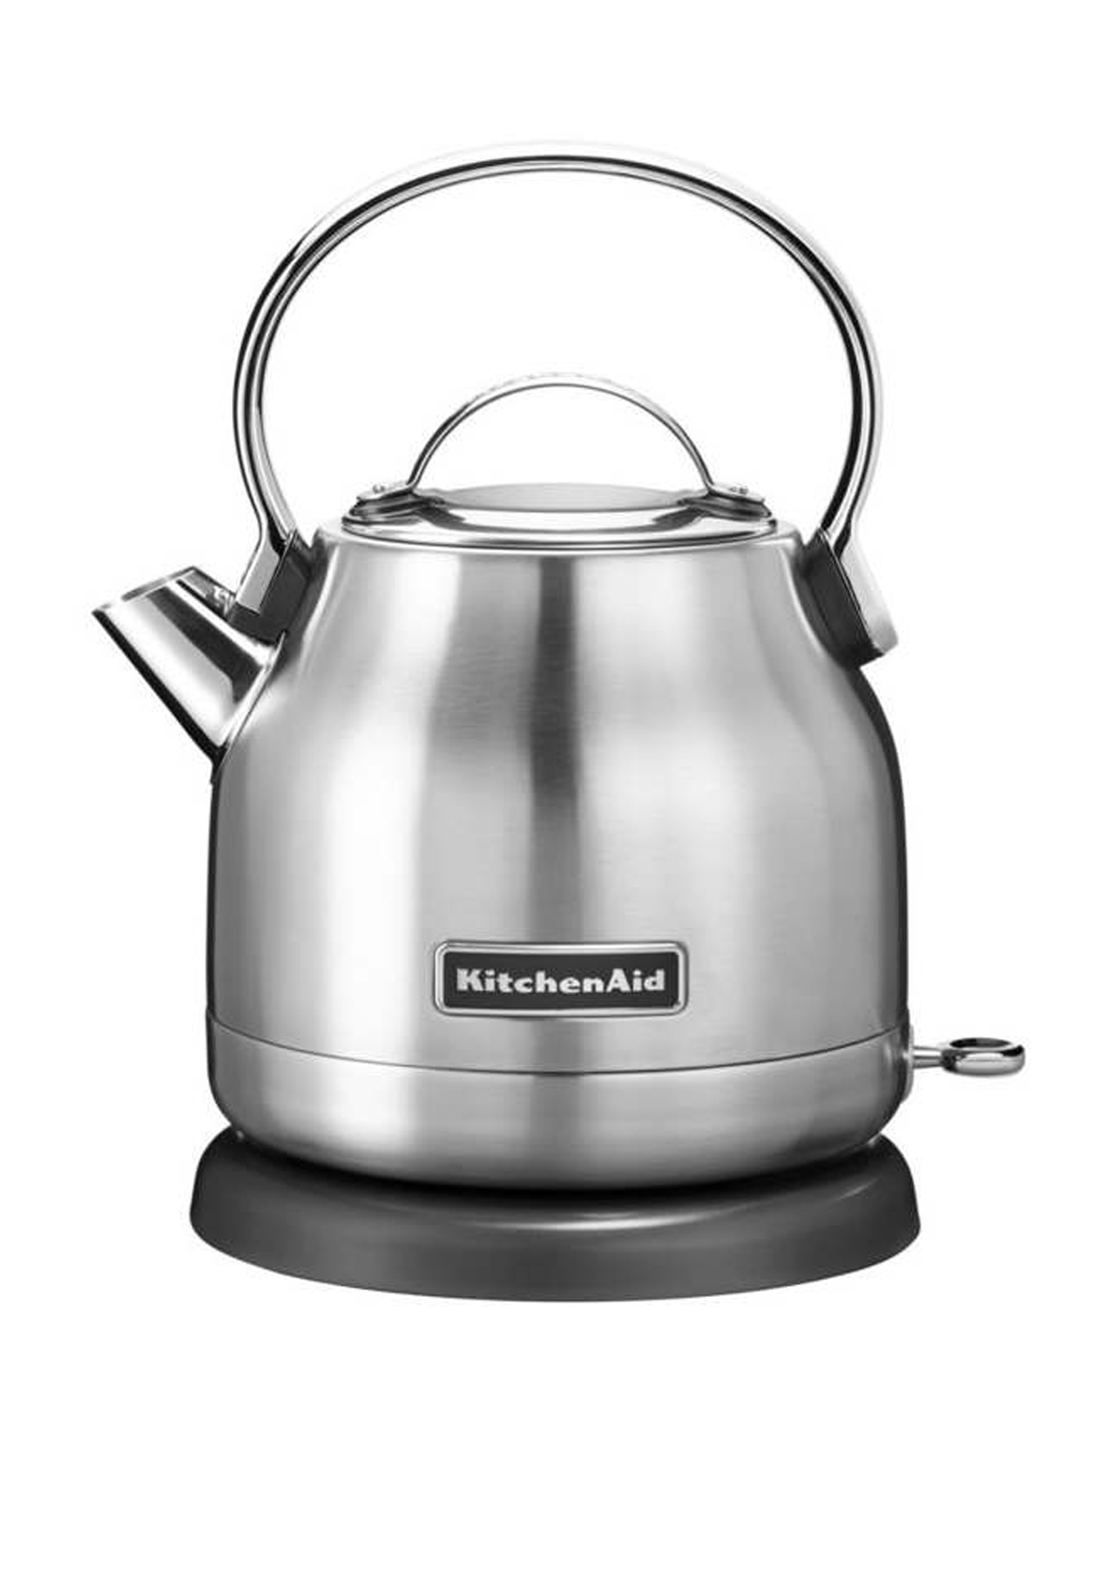 KitchenAid 1.25L Electric Kettle, Silver